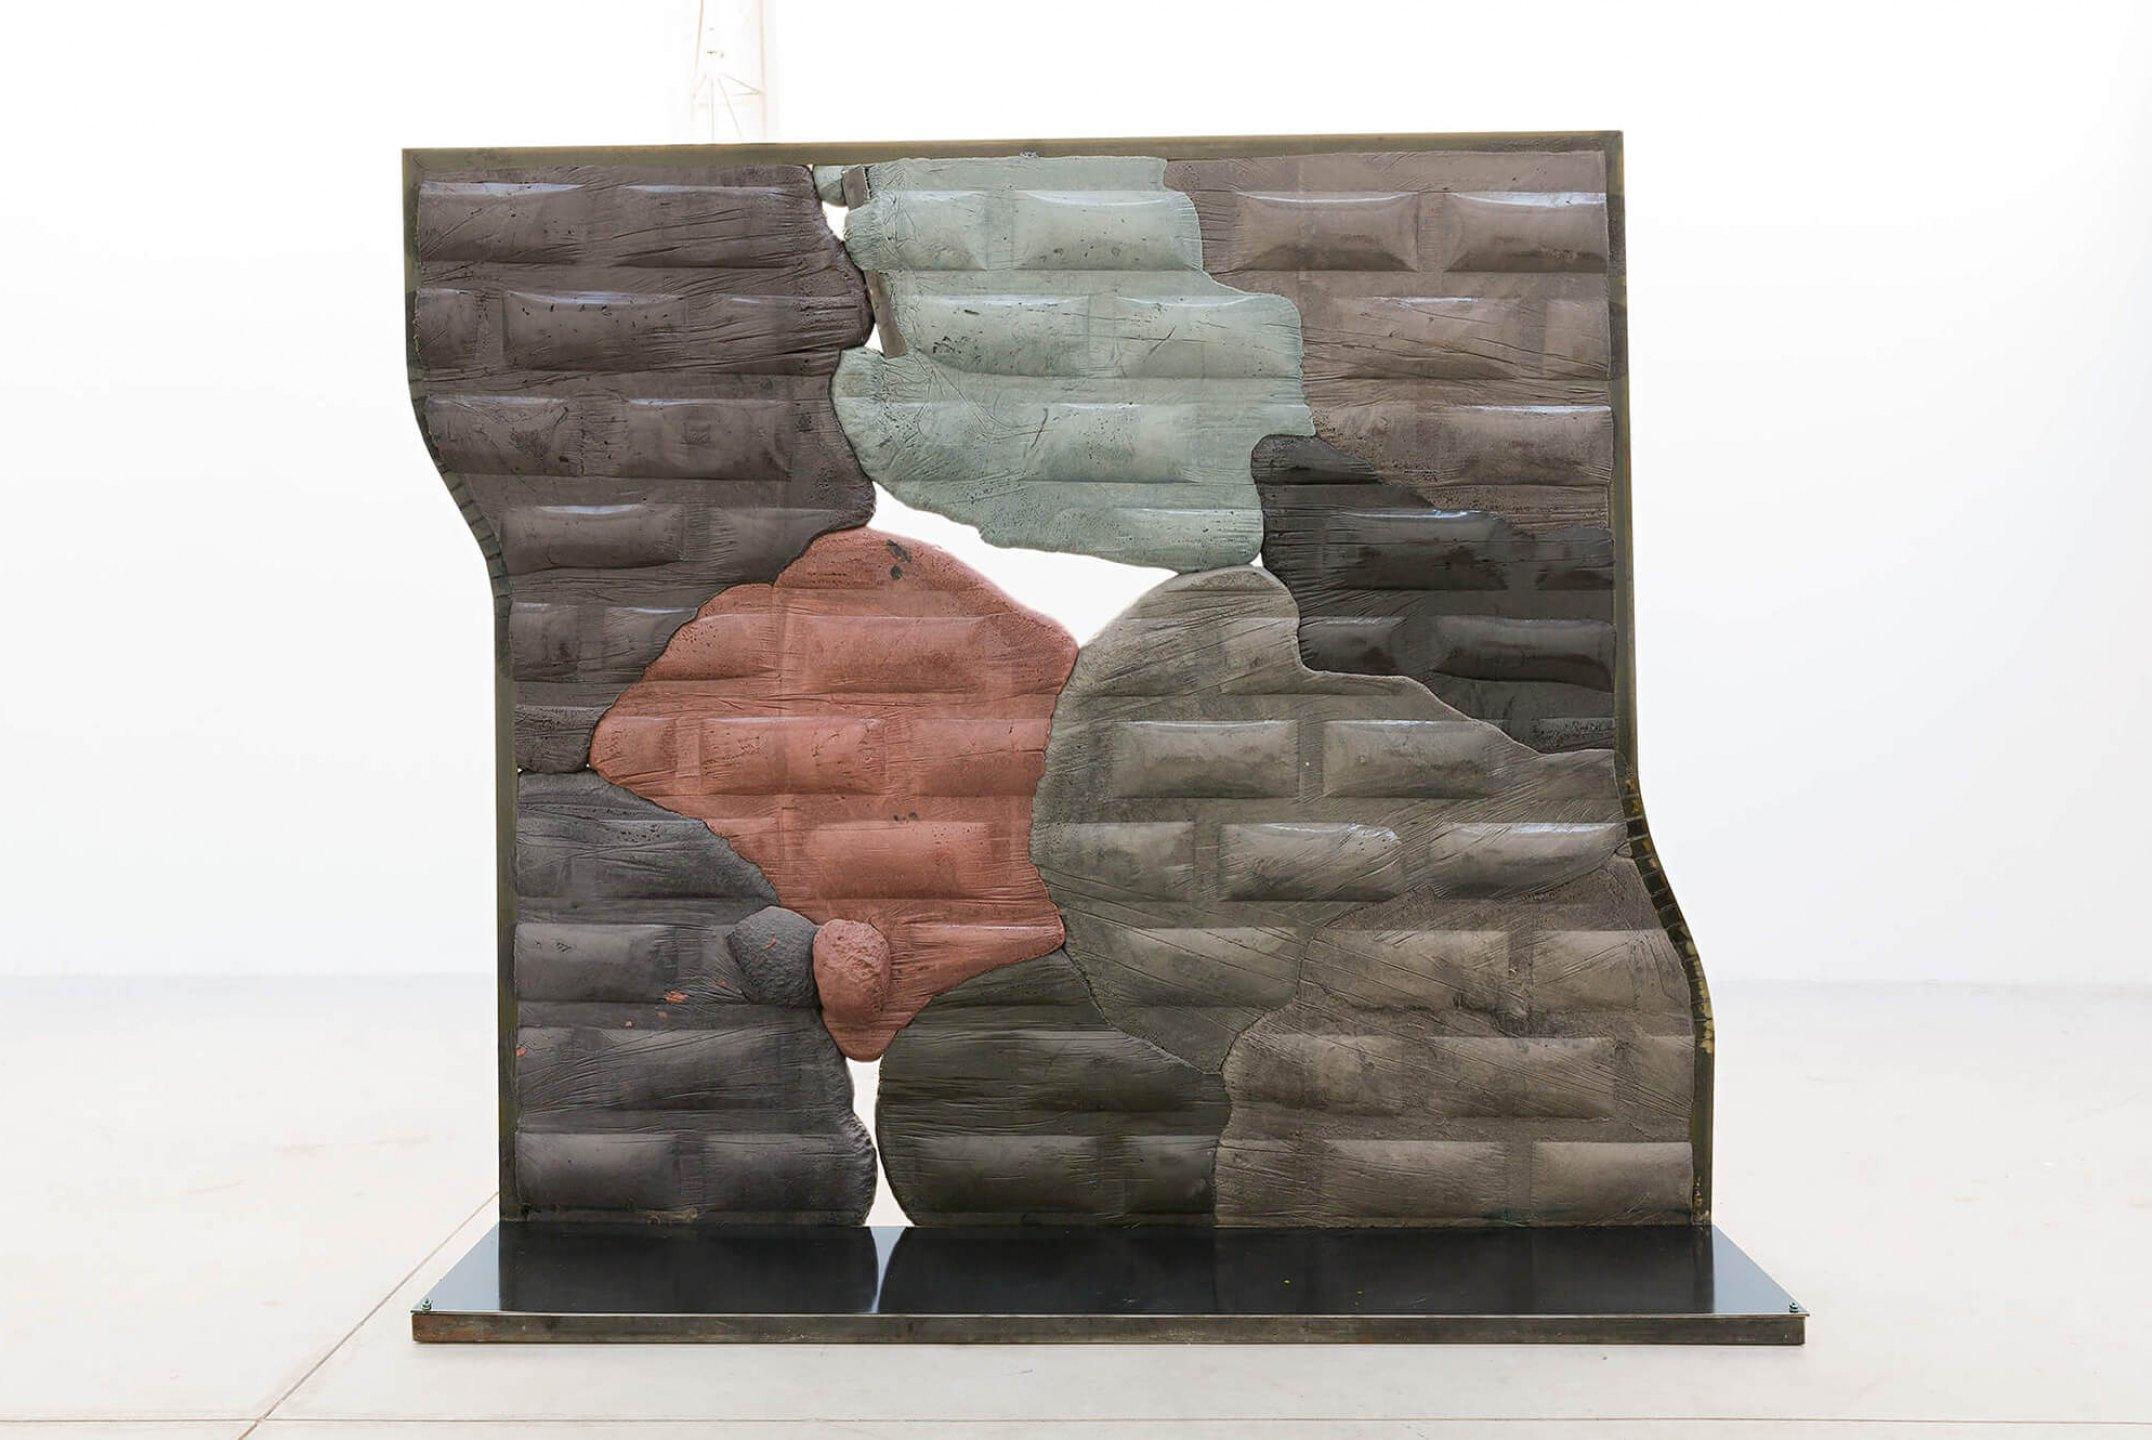 Neïl Beloufa, <em>The dancing one, from Secured wall series</em>, 2014, extensive foam, pigment and metal, 200 × 183 × 45 cm - Mendes Wood DM